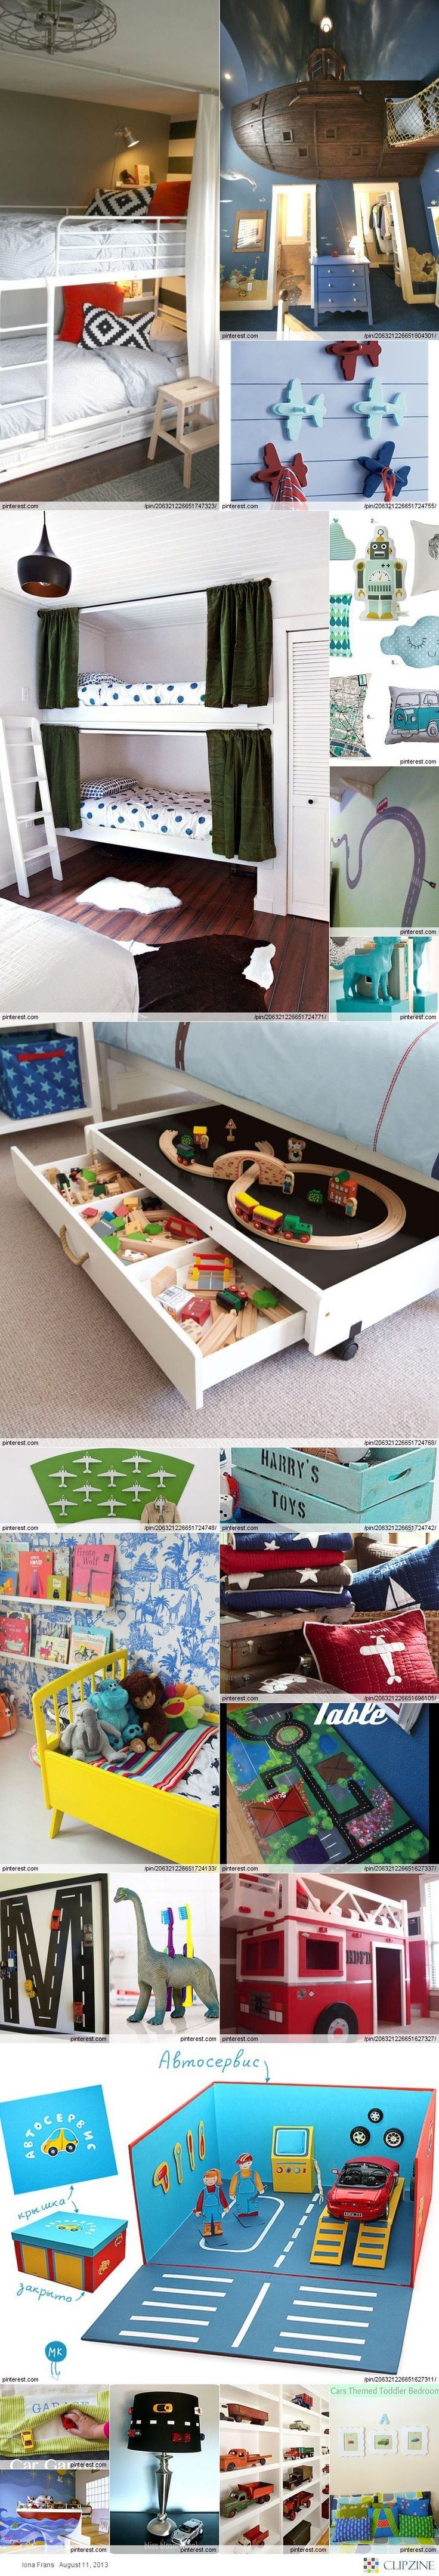 The tray that holds the train under the bed would be great for legos.